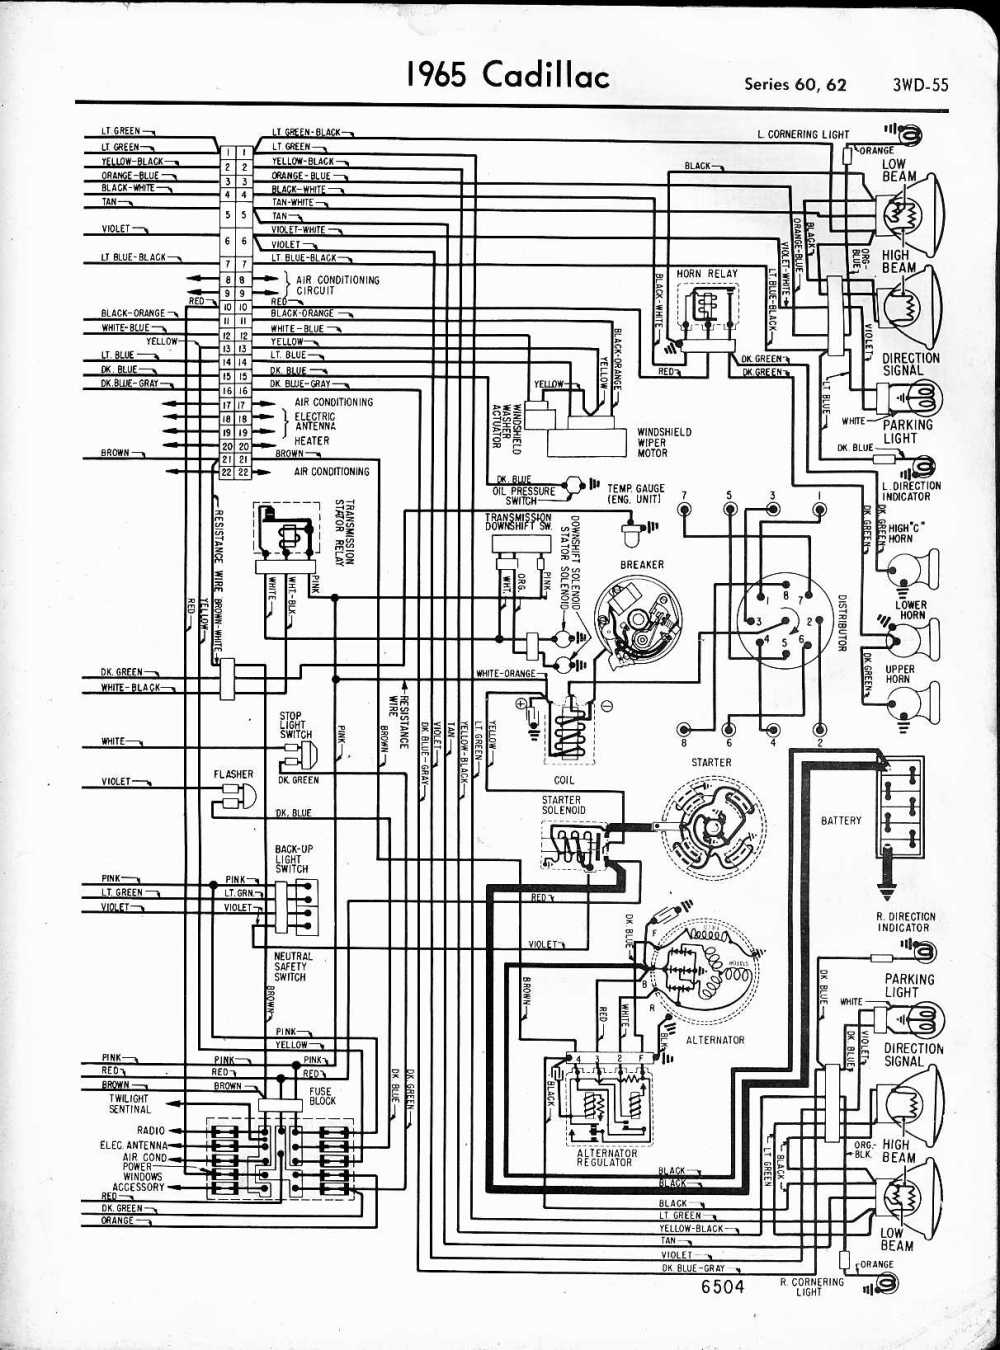 medium resolution of wiring diagram for 2000 cadillac deville wiring diagram repair 2000 cadillac deville wiring harness diagram